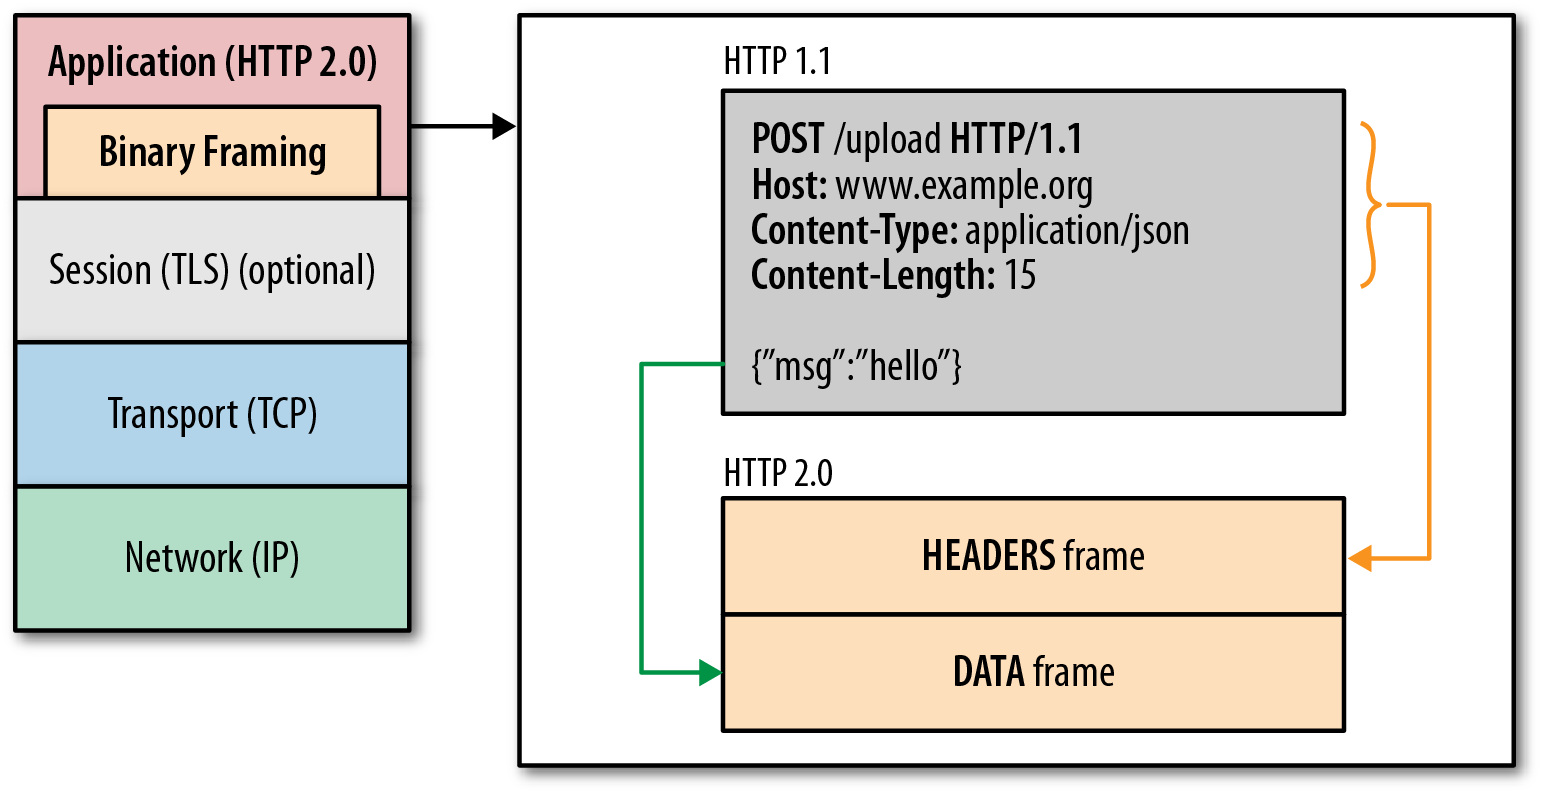 Http 2 0 what changes are expected with the new standard